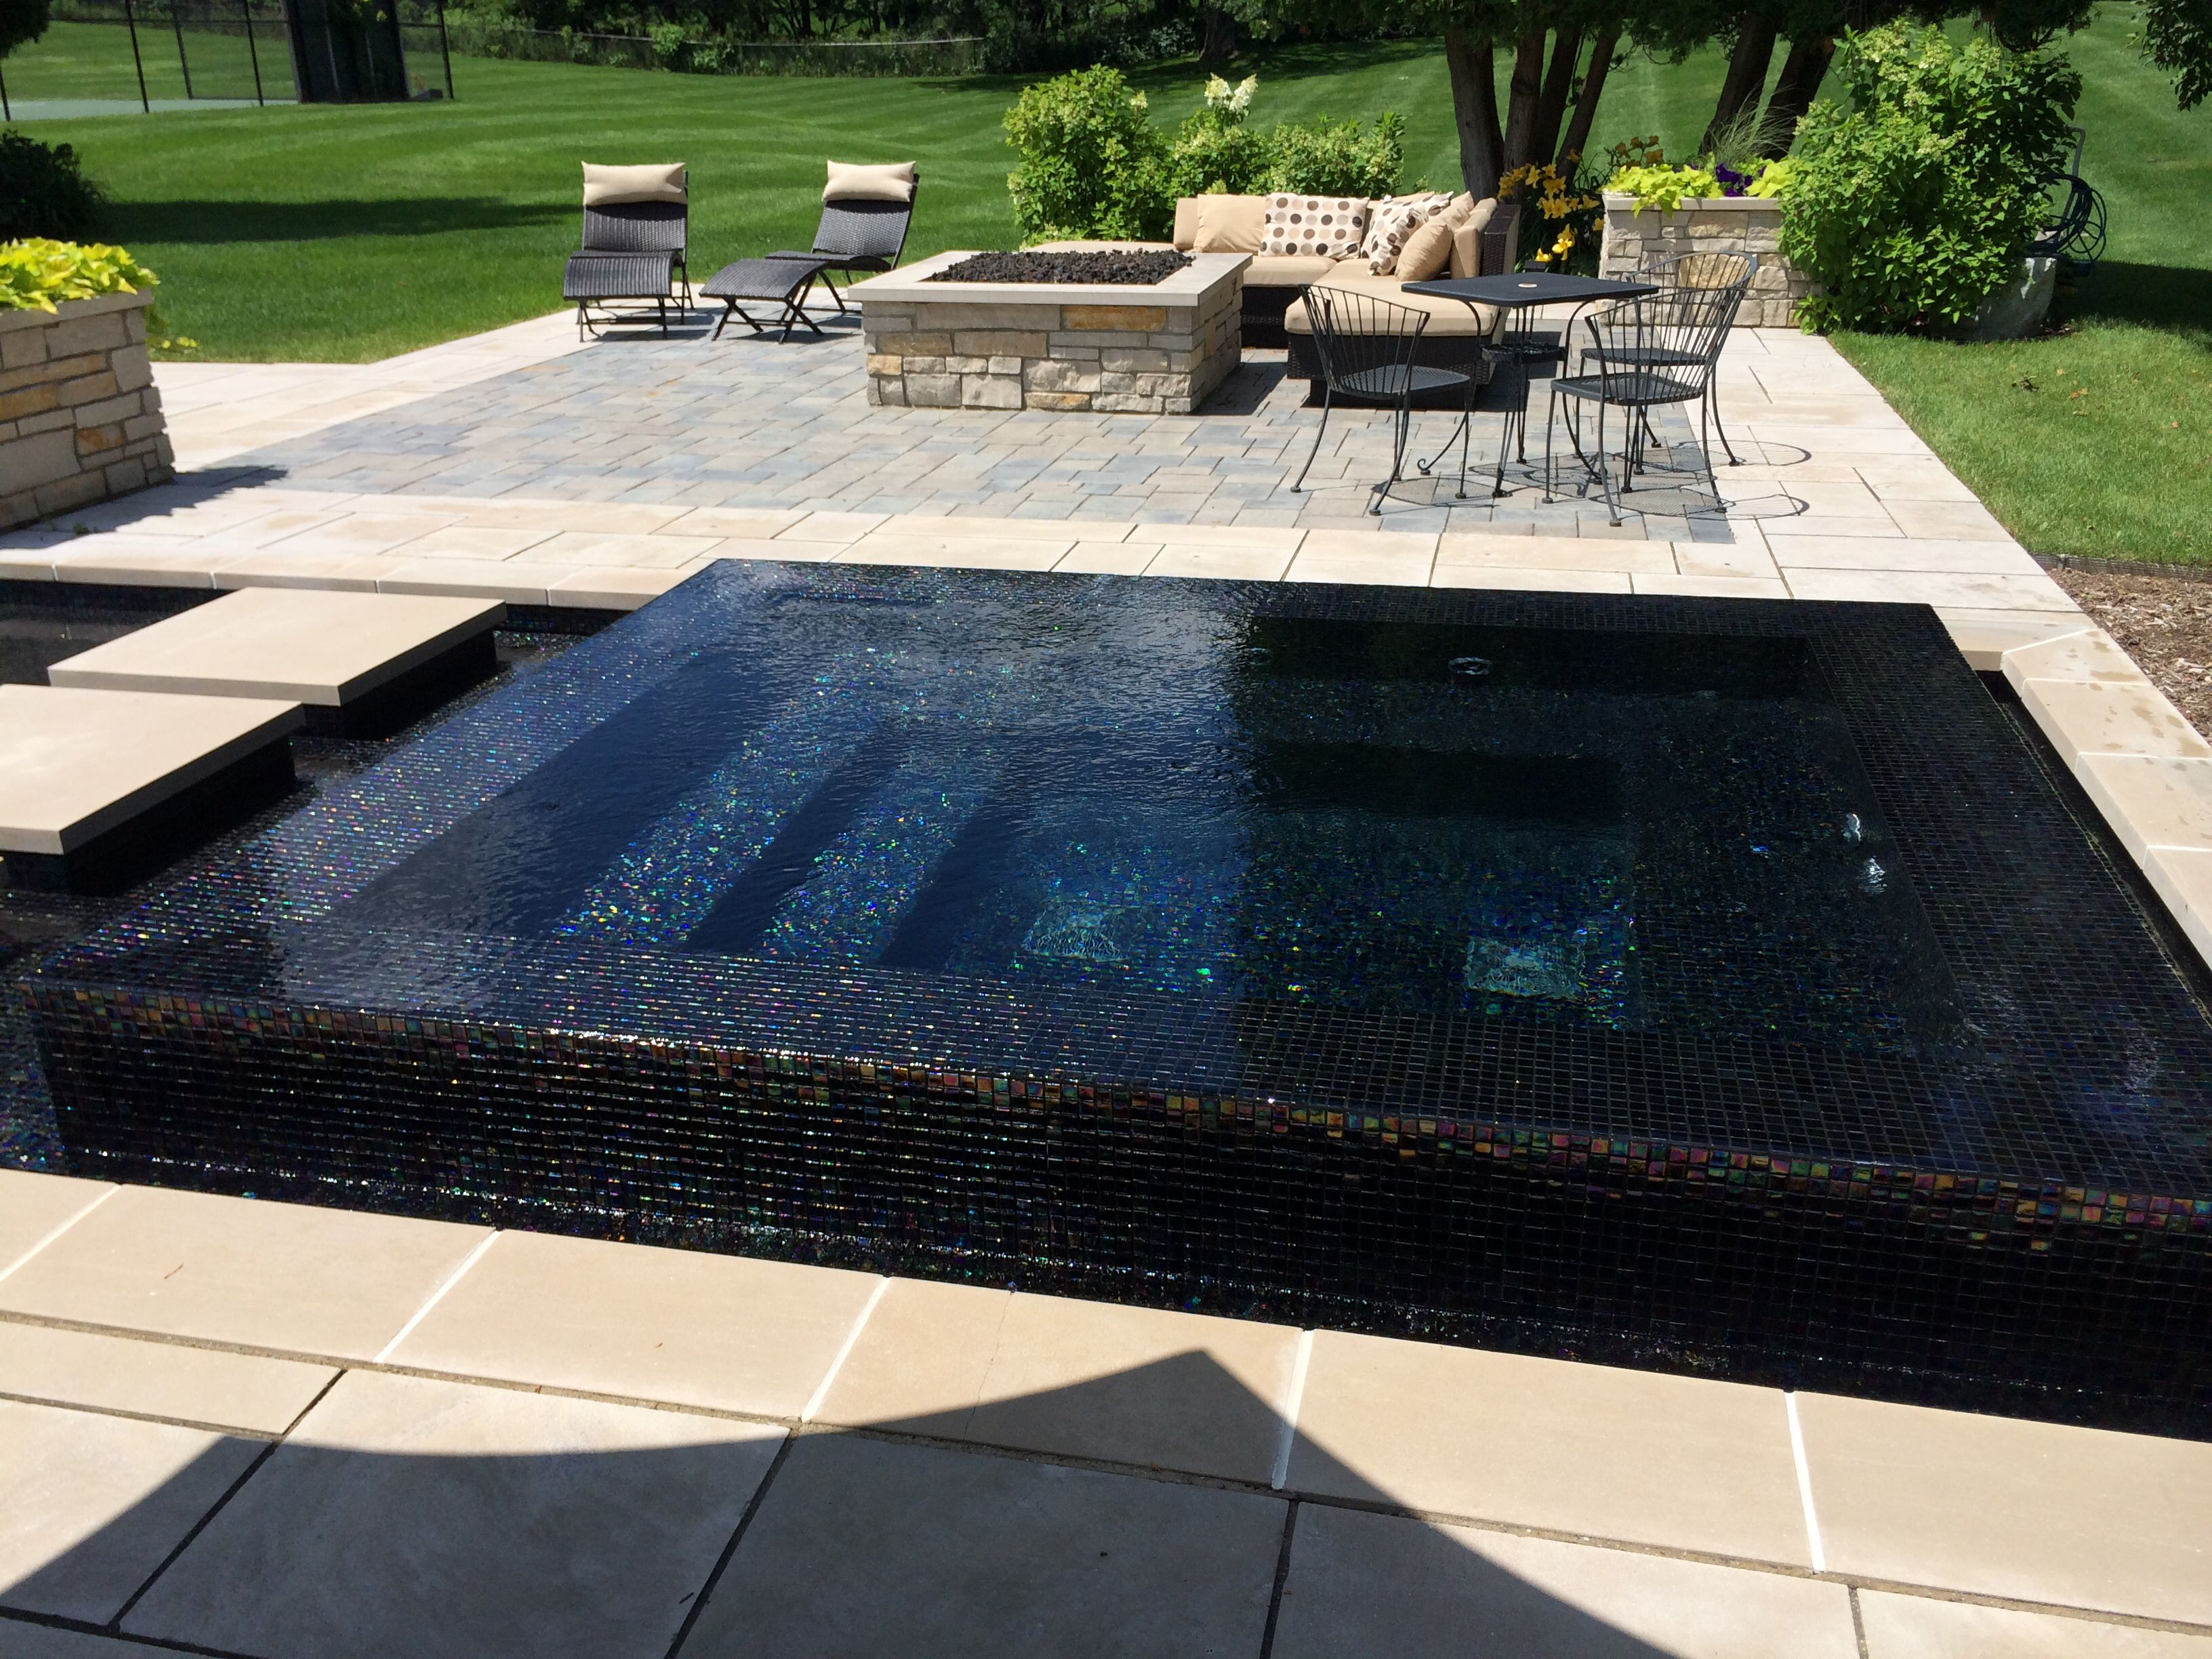 Jacuzzi Pool Ideas Perimeter Overflow Glass Tile Spa Love The Idea Of The Entire